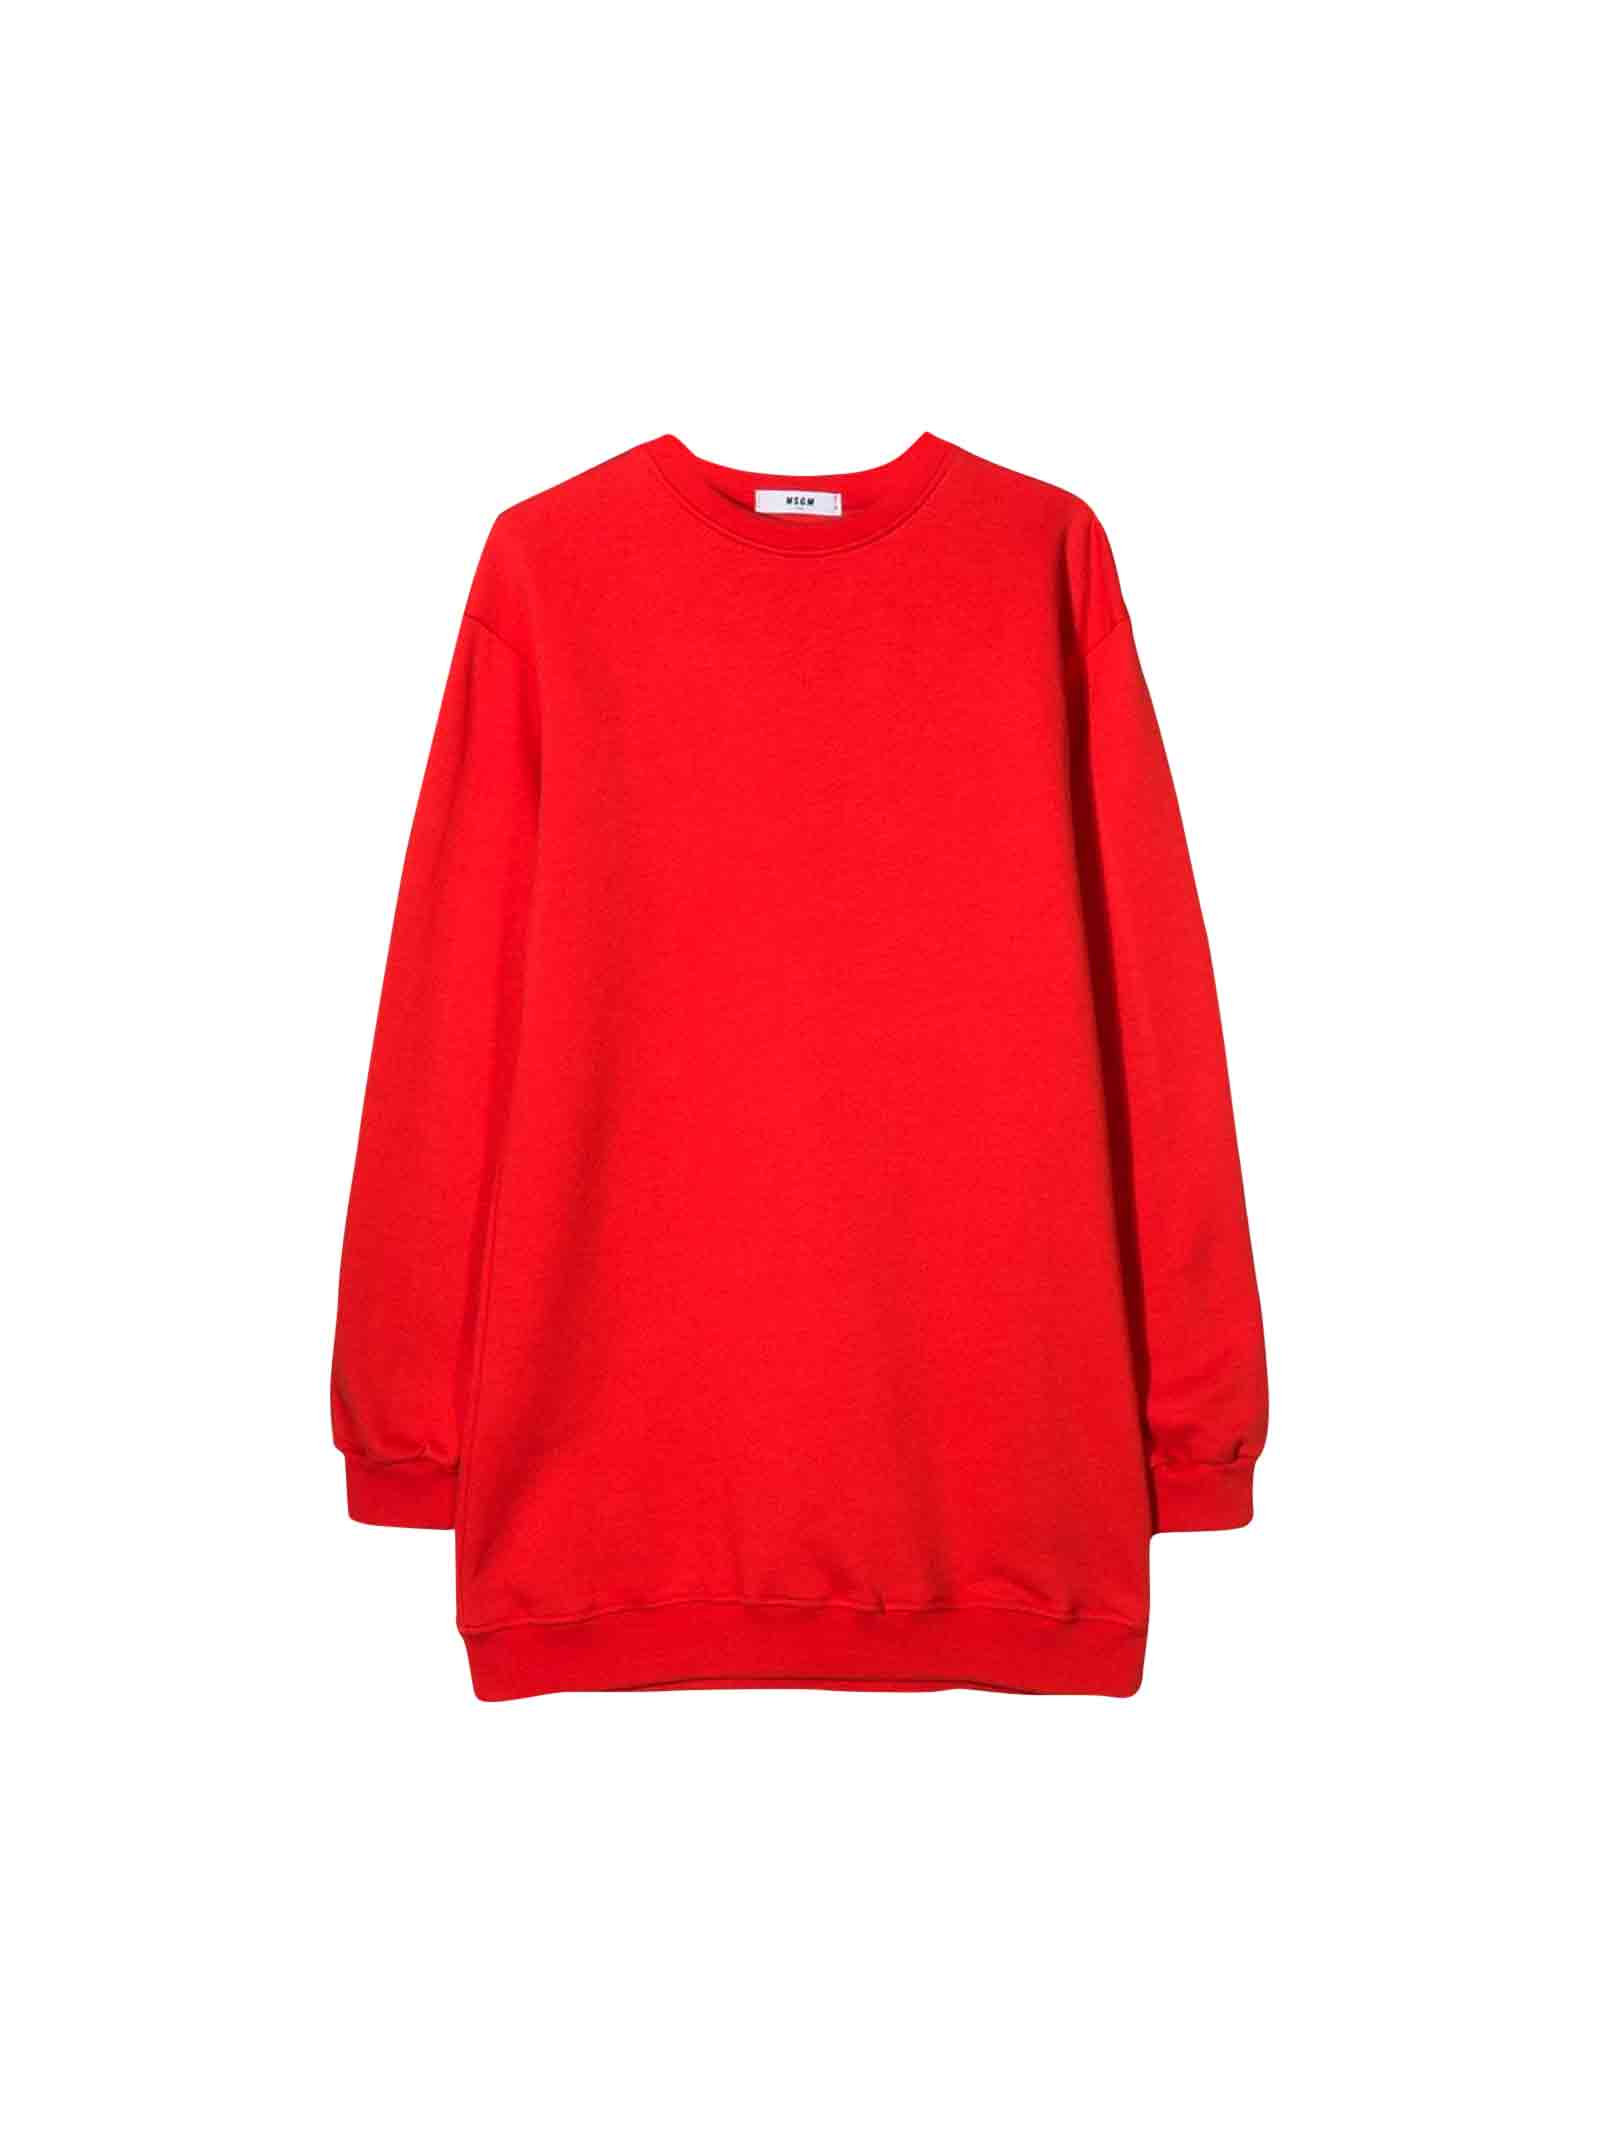 MSGM Msgm Girls Red Sweatshirt Dress